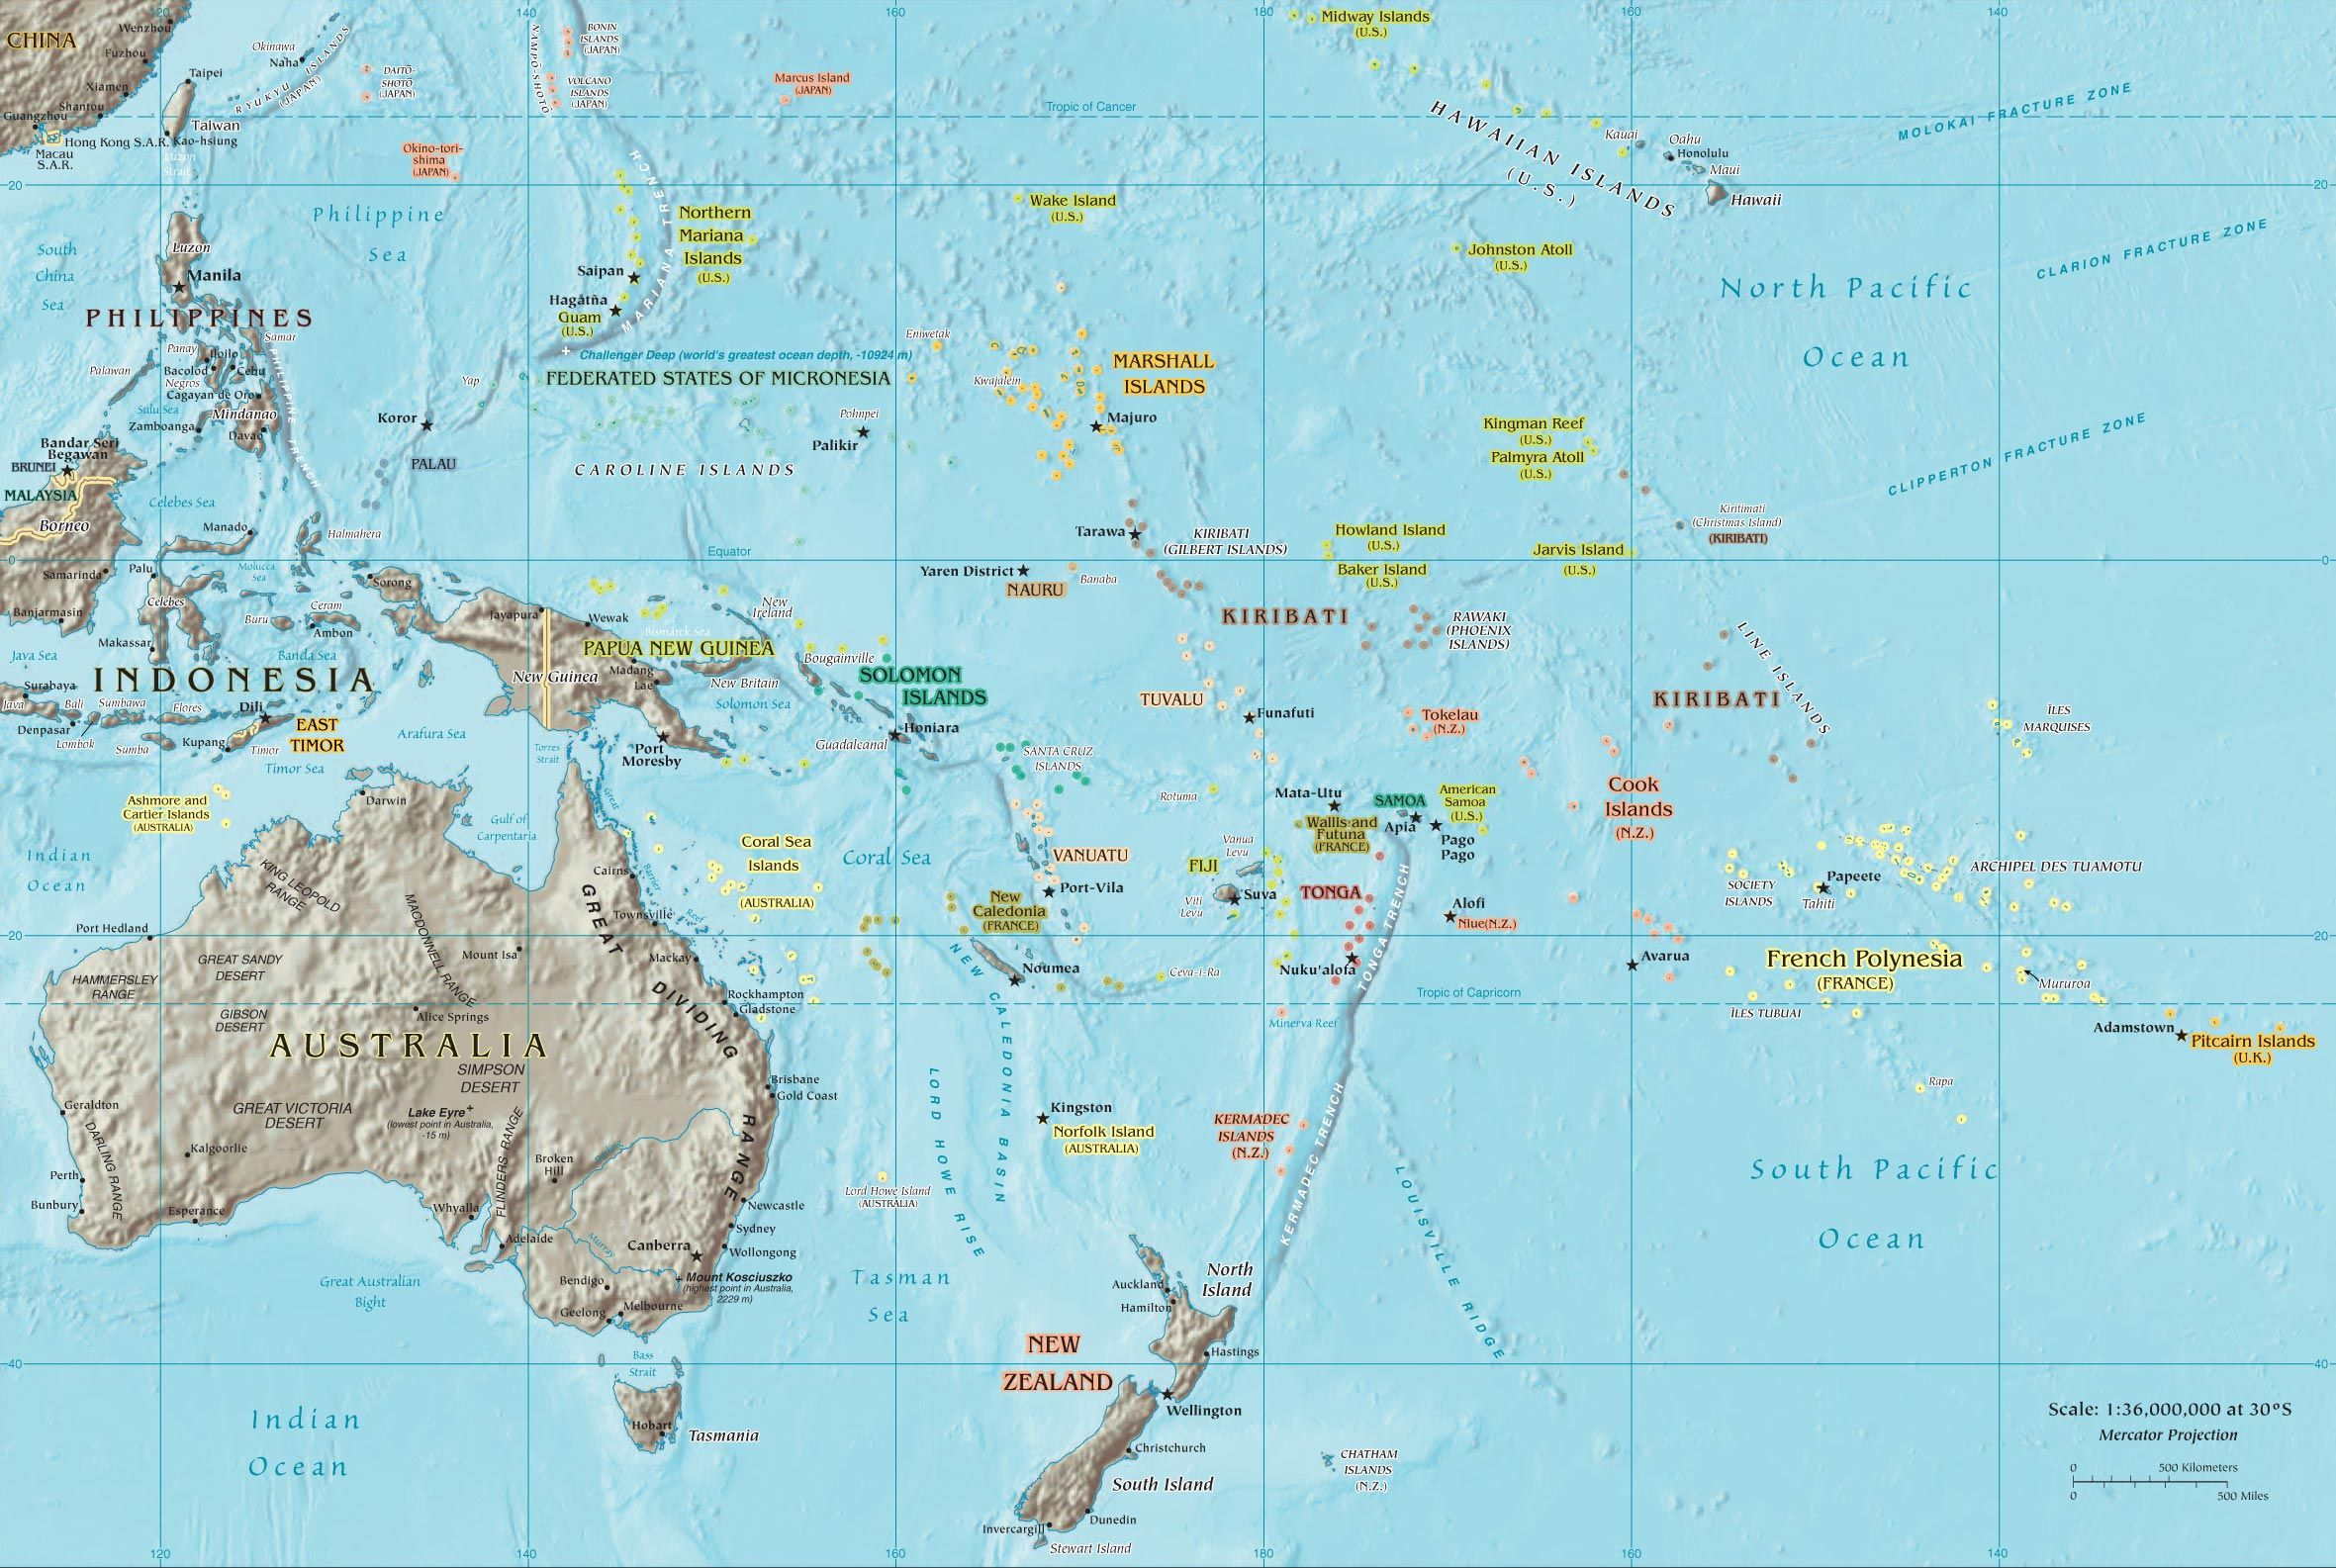 tahiti map of pacific Map Of The South Pacific With Tahiti South Pacific Islands tahiti map of pacific